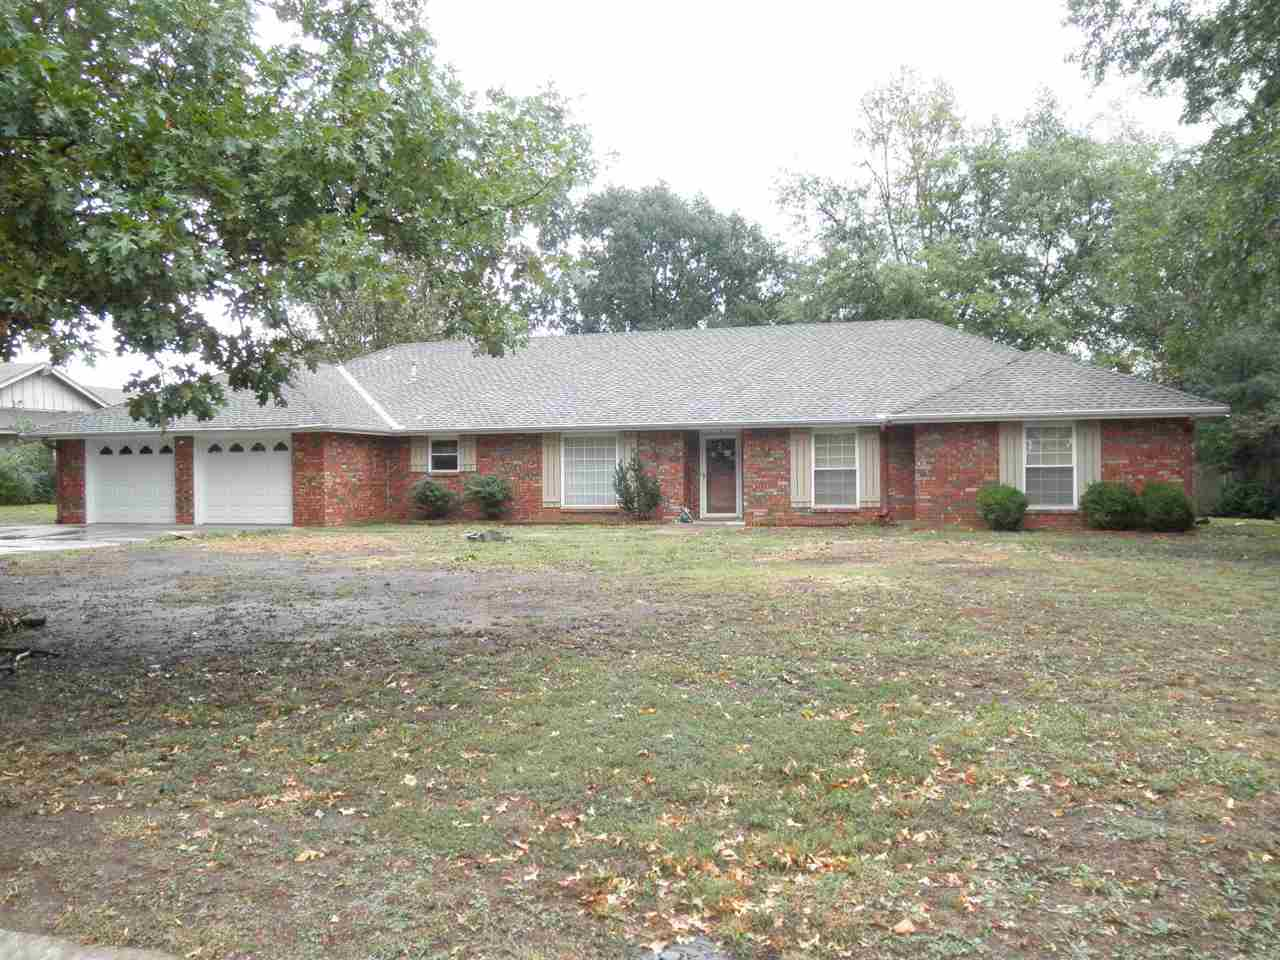 Sold Cross Sale W/ MLS | 2805 Homestead Ponca City, OK 74604 0